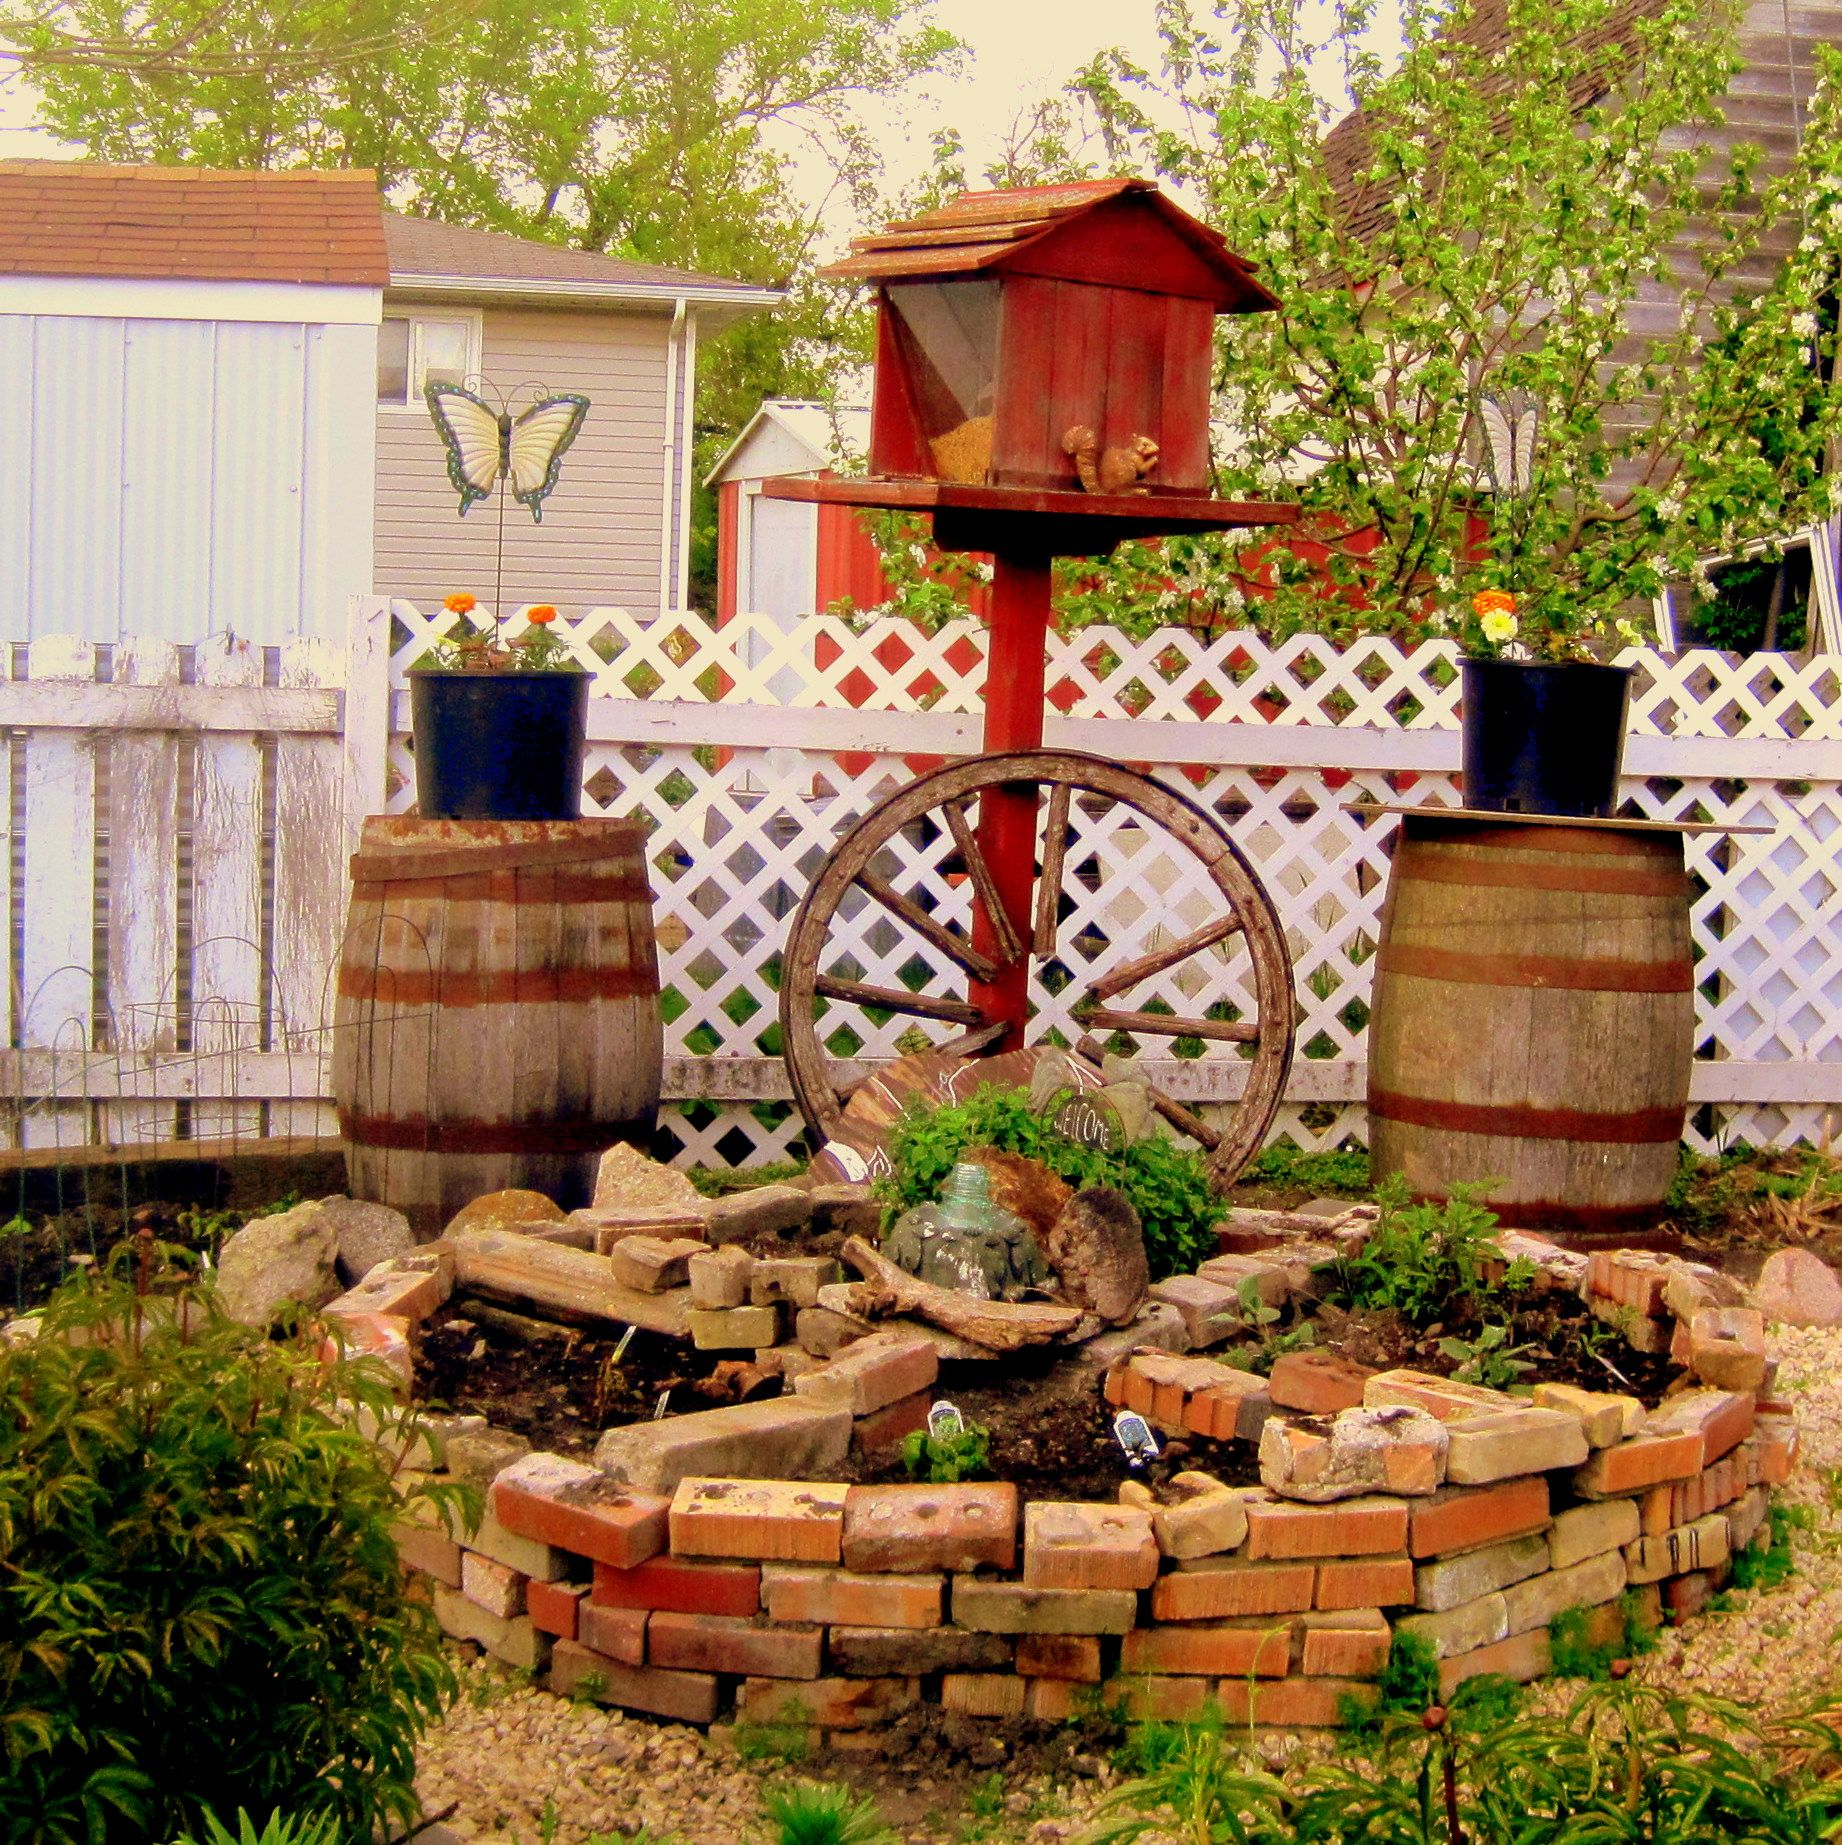 We created herb/medicine wheel from recycled bricks we found at the ...